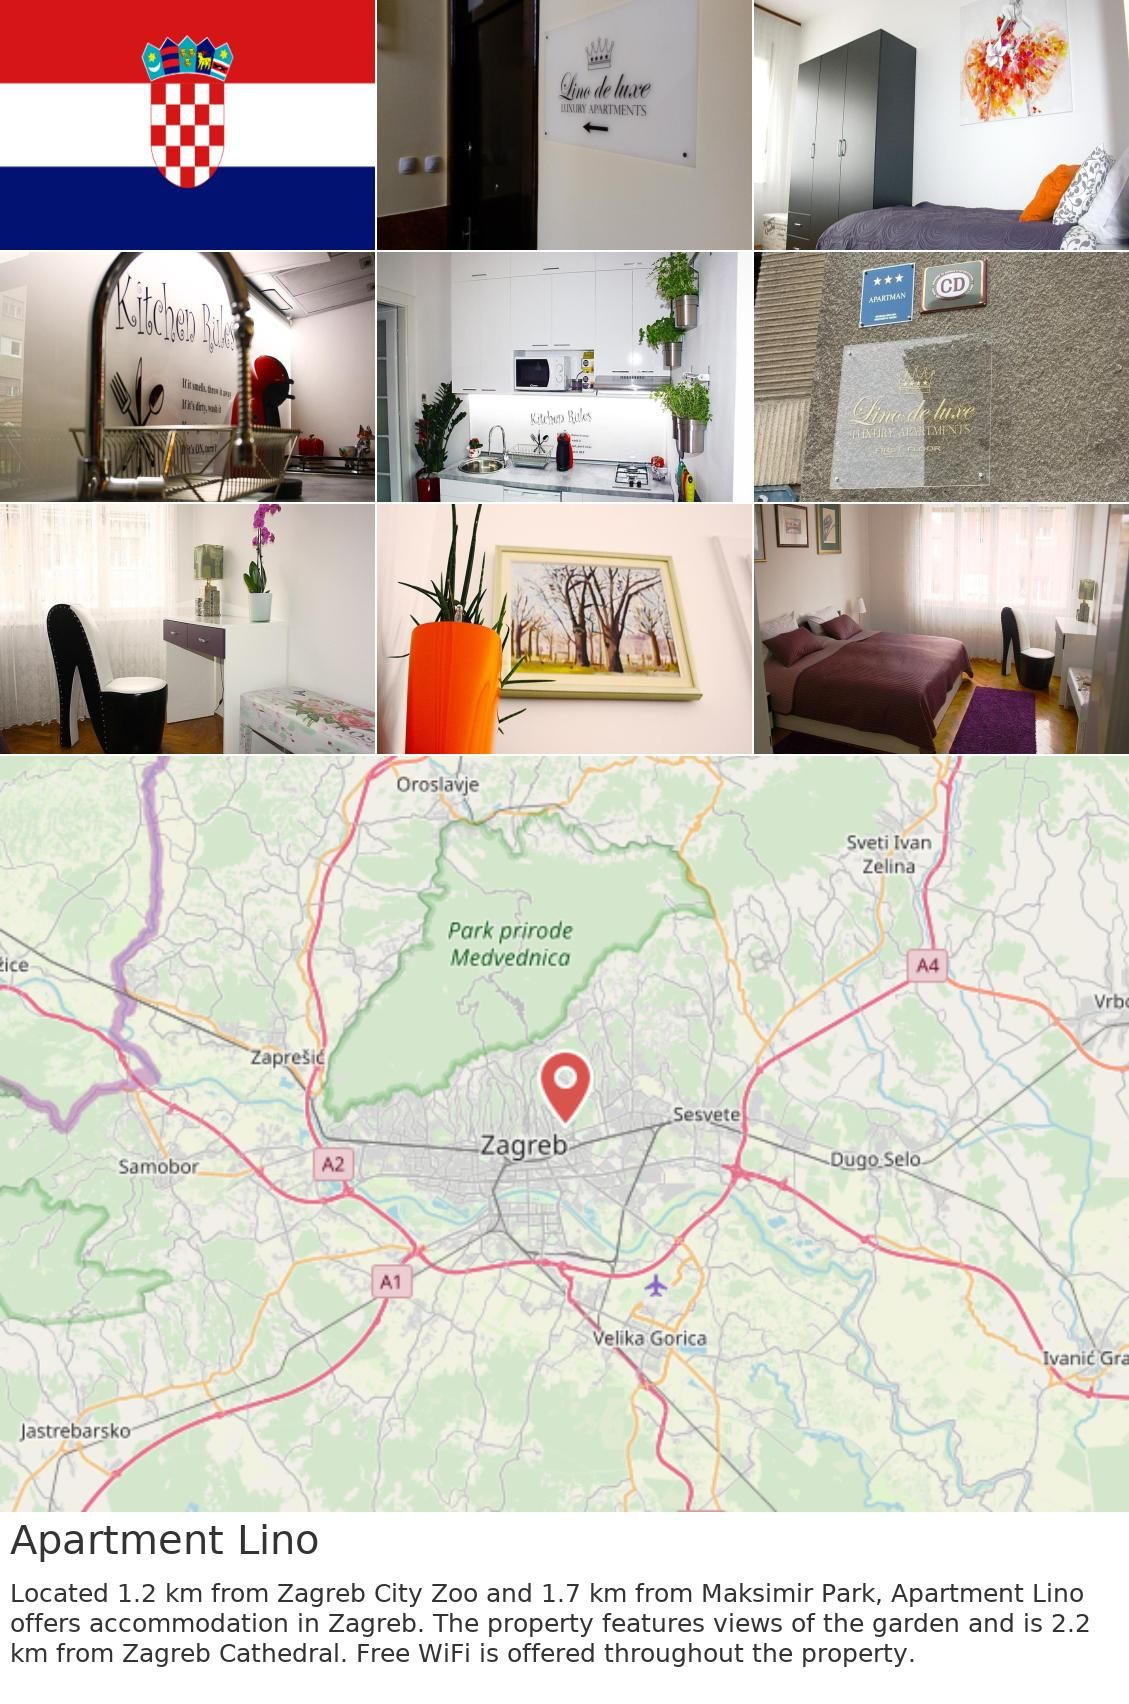 Europe Croatia Zagreb Apartment Lino Located 1 2 Km From Zagreb City Zoo And 1 7 Km From Maksimir Park Apartment Lino Offers Accommodation In Zagreb The P